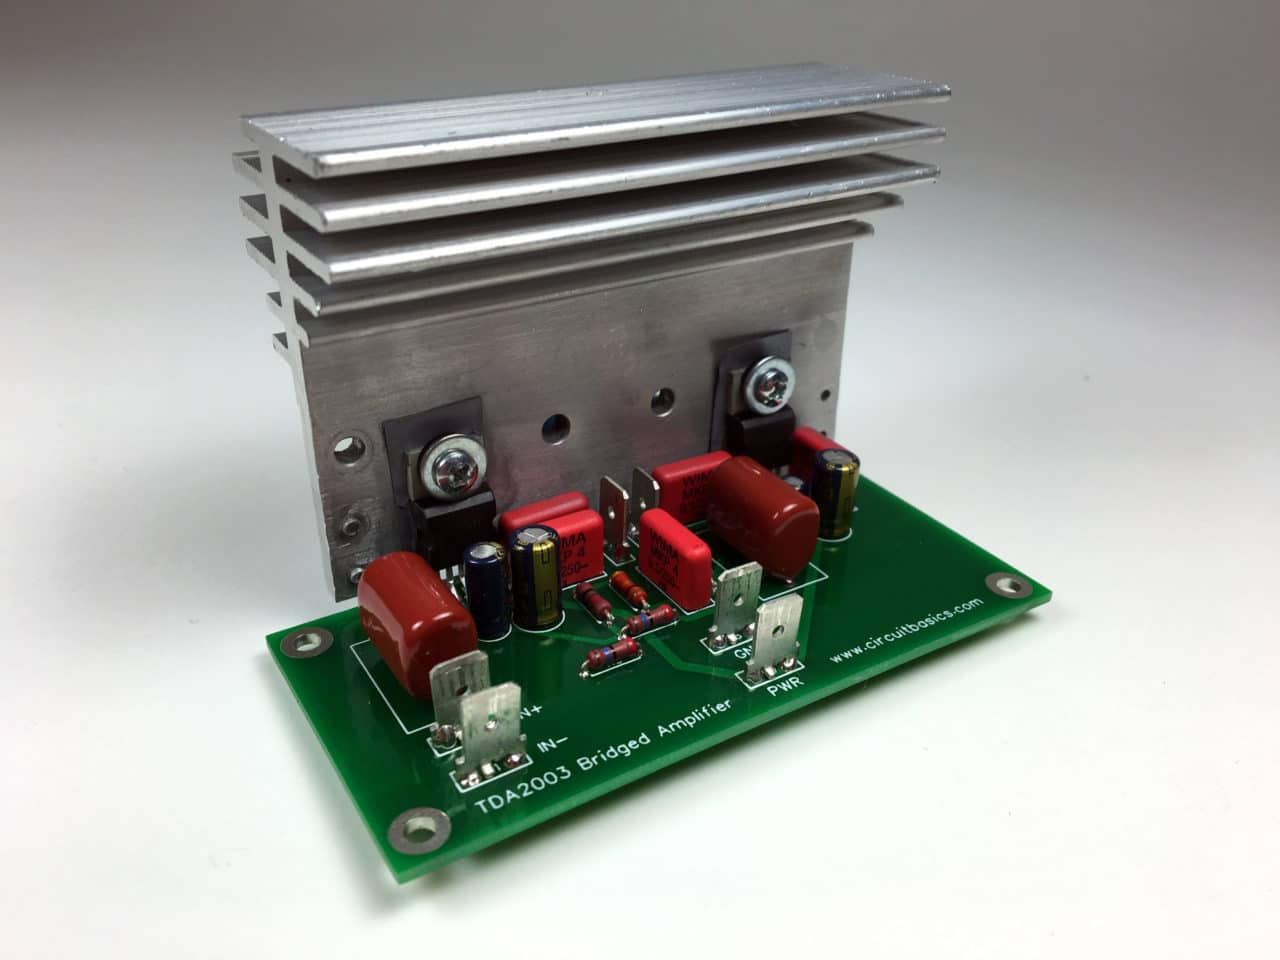 Build A Great Sounding Audio Amplifier With Bass Boost From The Lm386 Application Circuits Explained In Simple Words Homemade Circuit Guide For Building Tda2003 Bridged And Stereo Amplifiers